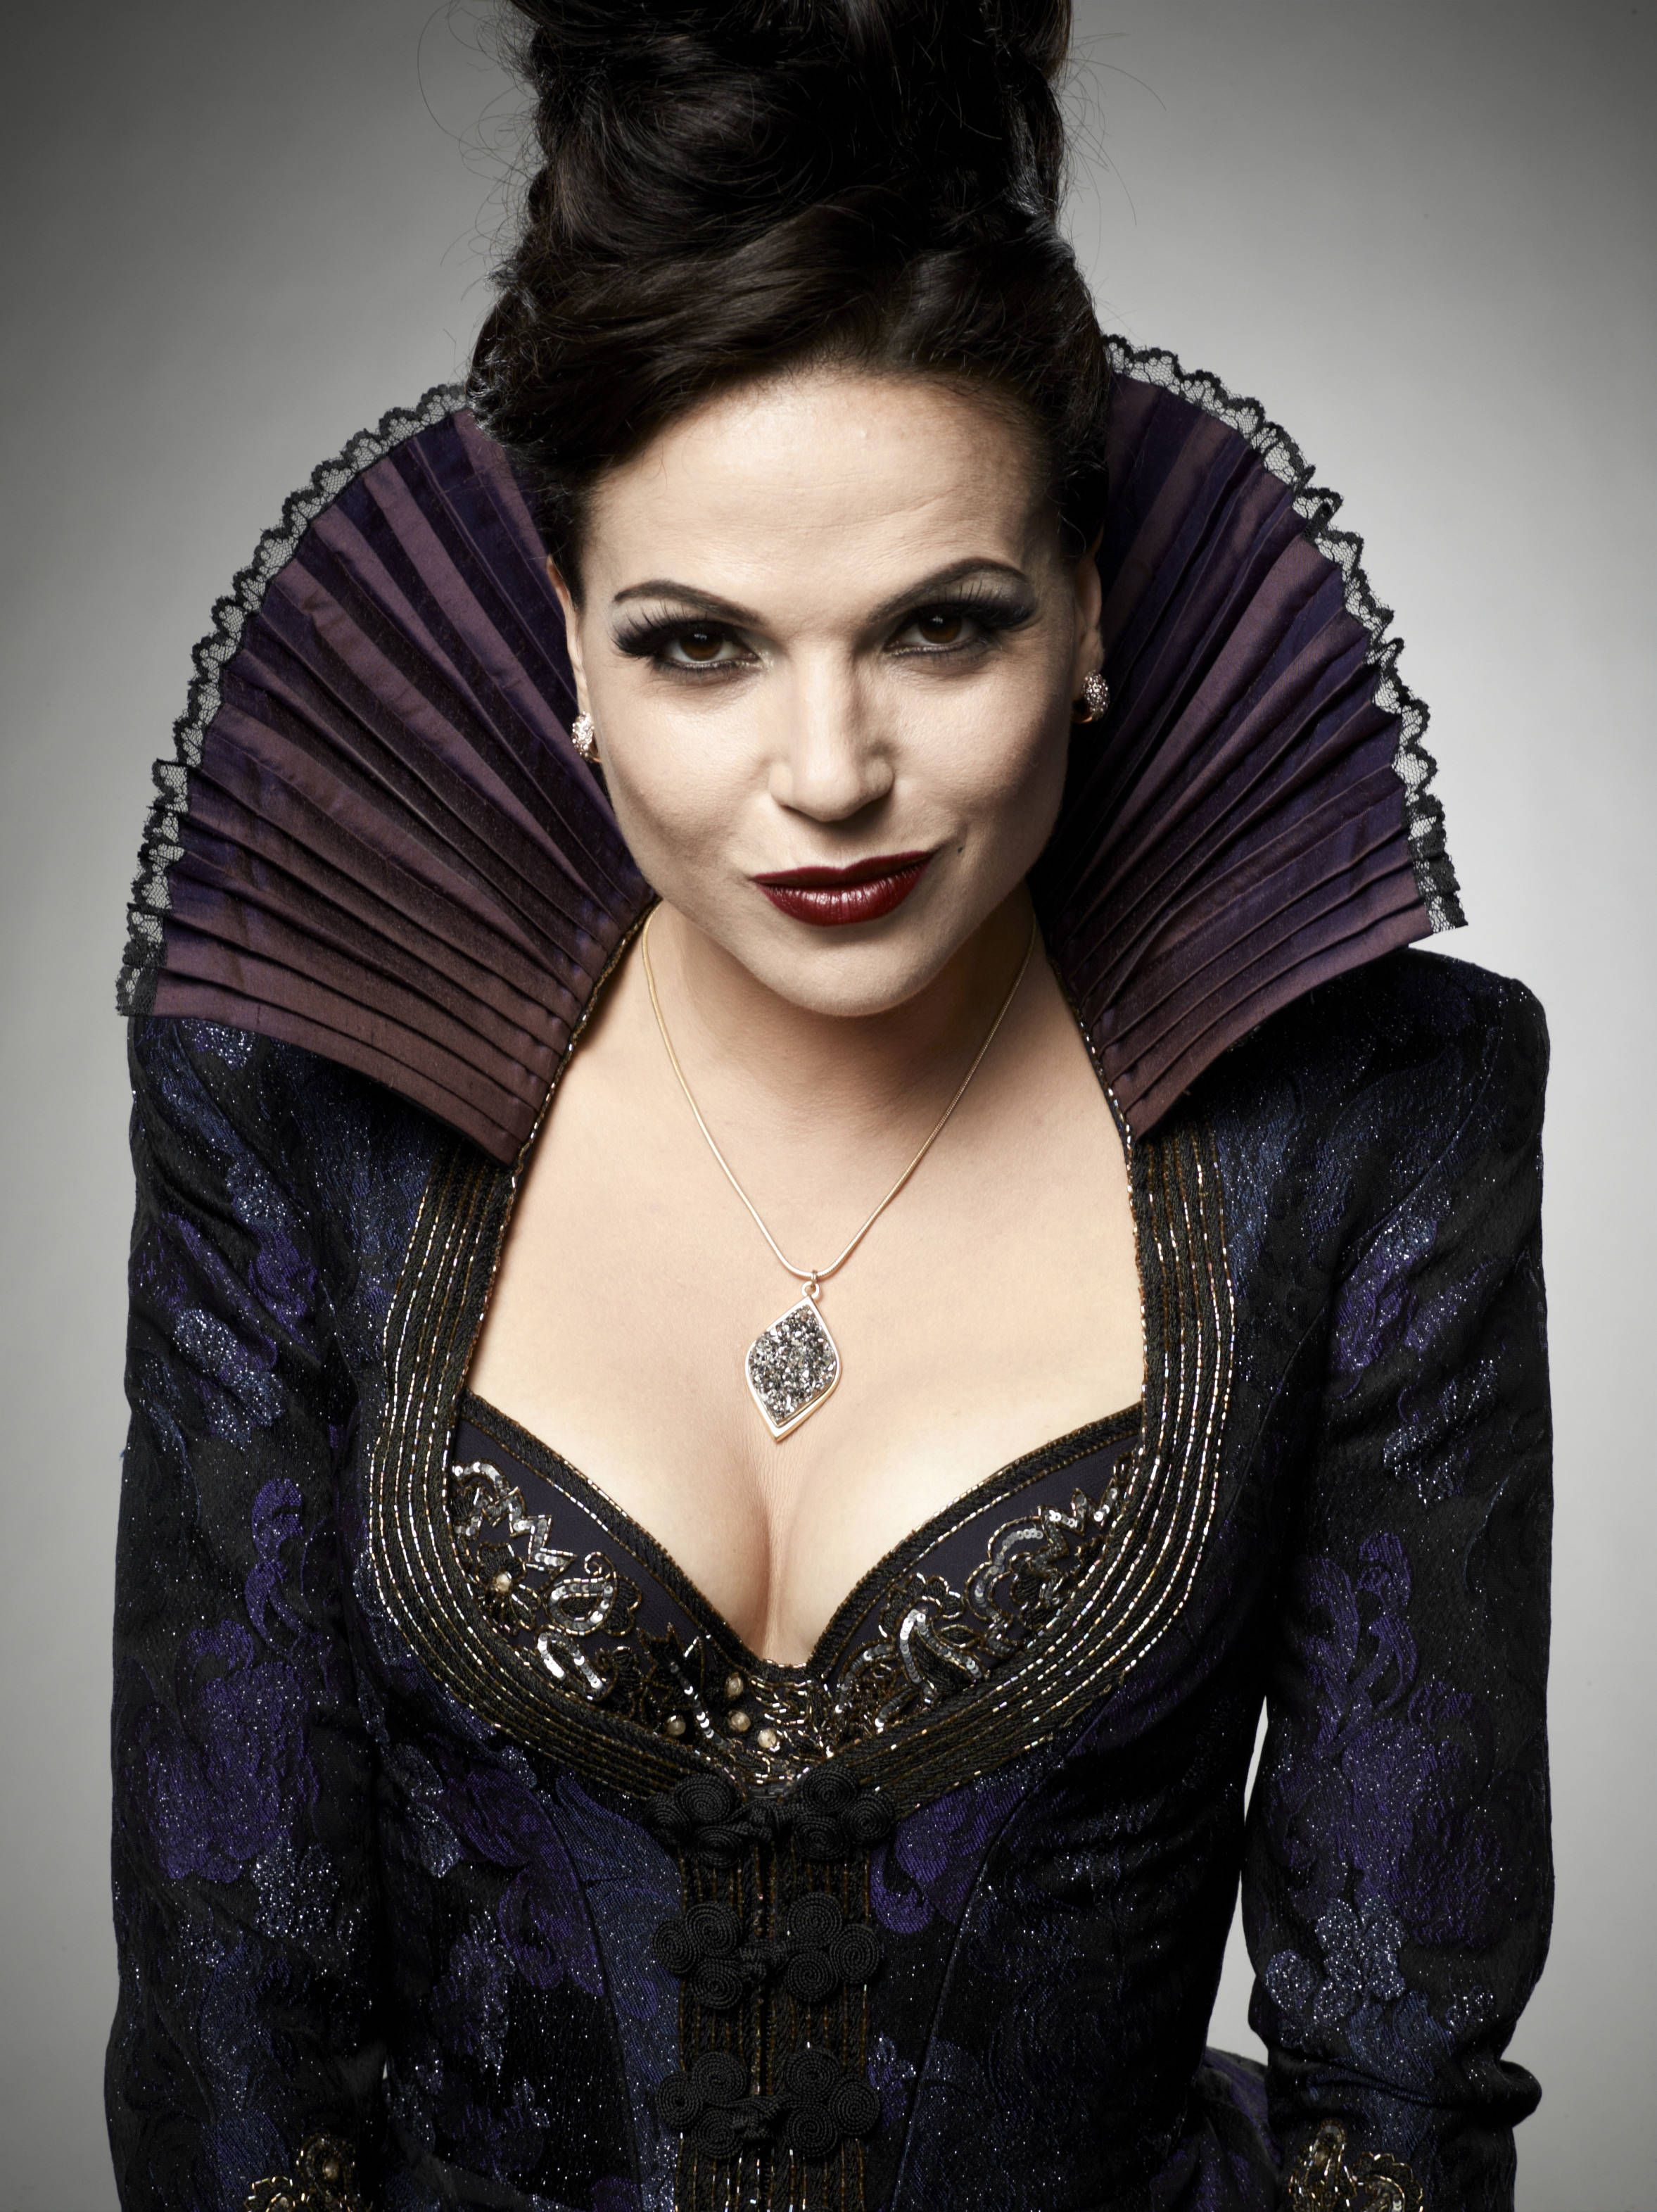 Lana Parrilla Once Upon A Time Season 2 Promos With Images